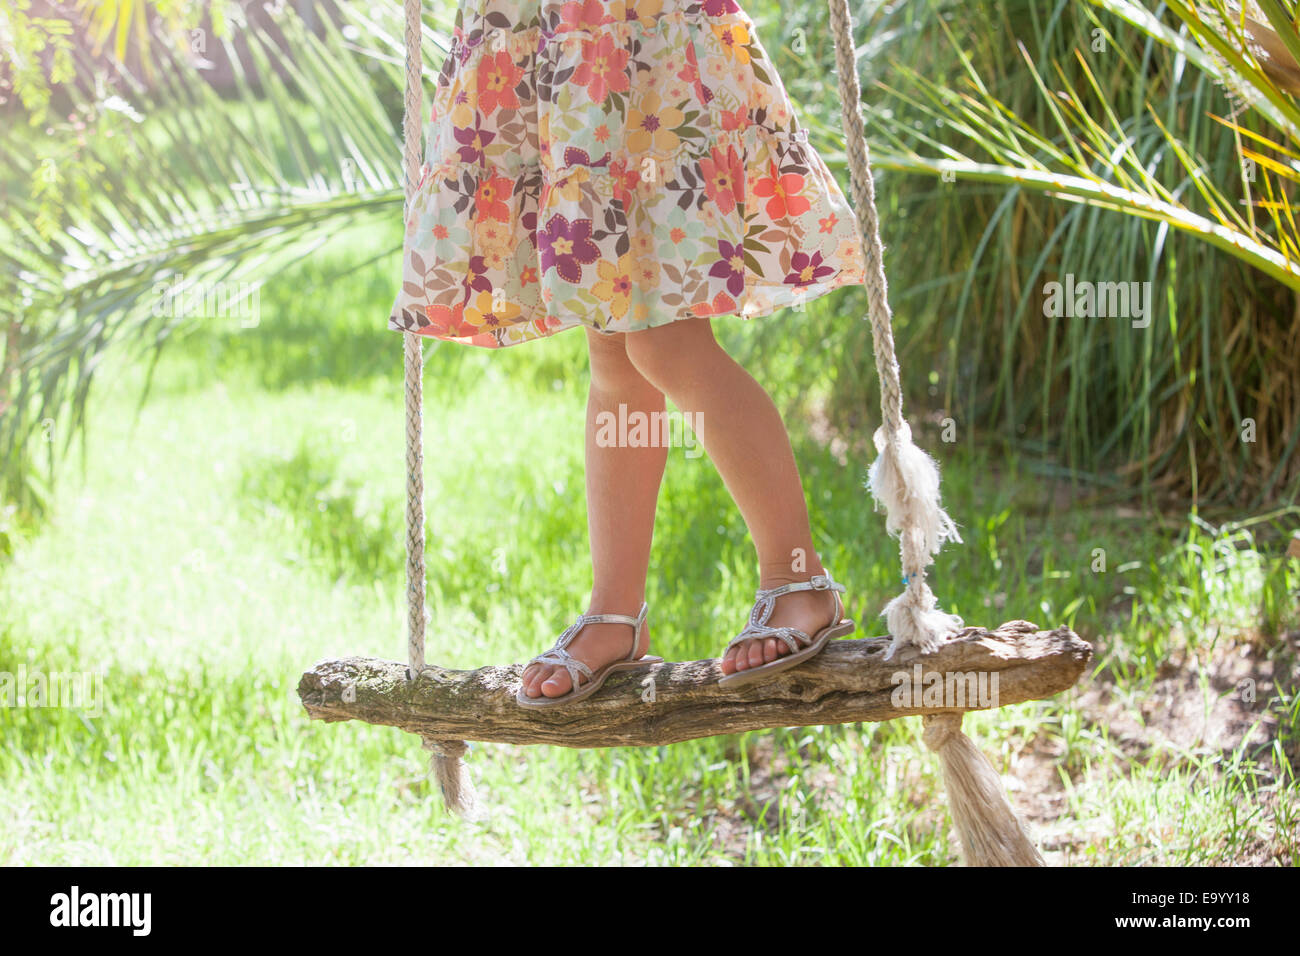 Waist down cropped shot of girl standing on tree swing in garden - Stock Image